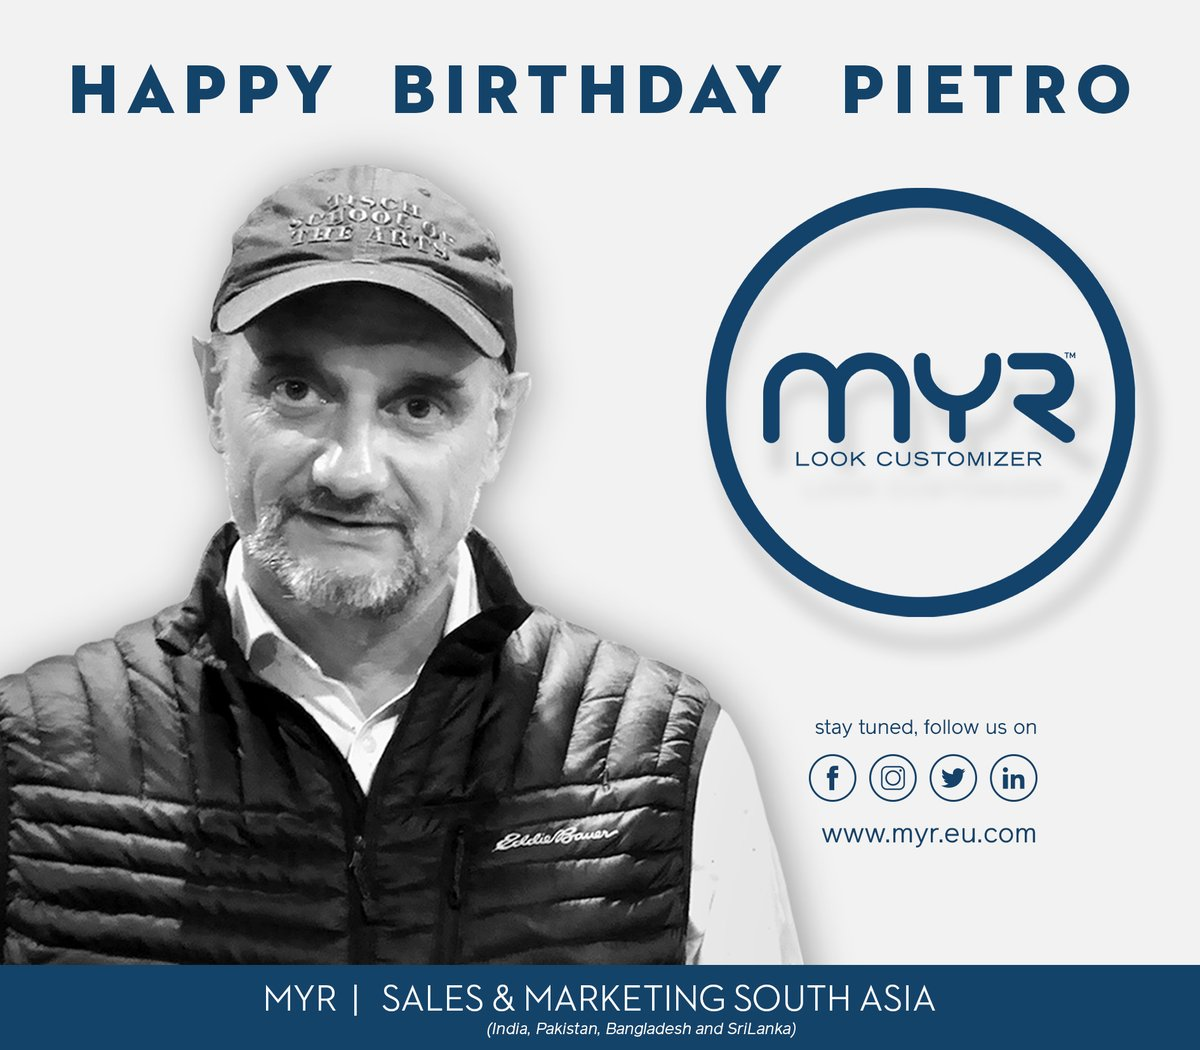 HAPPY BIRTHDAY PIETRO FROM MYR GROUP | https://t.co/N7AoP9ybdV info@myr.eu.com #software #denim #jeans #innovation #dream #play #love #life #design #job #technology #culture  #future #creativity #excellence #moda #coleção #inovação #arte #denim #jeans #têxteis #tons #cor #preta https://t.co/YQzumGVU2r